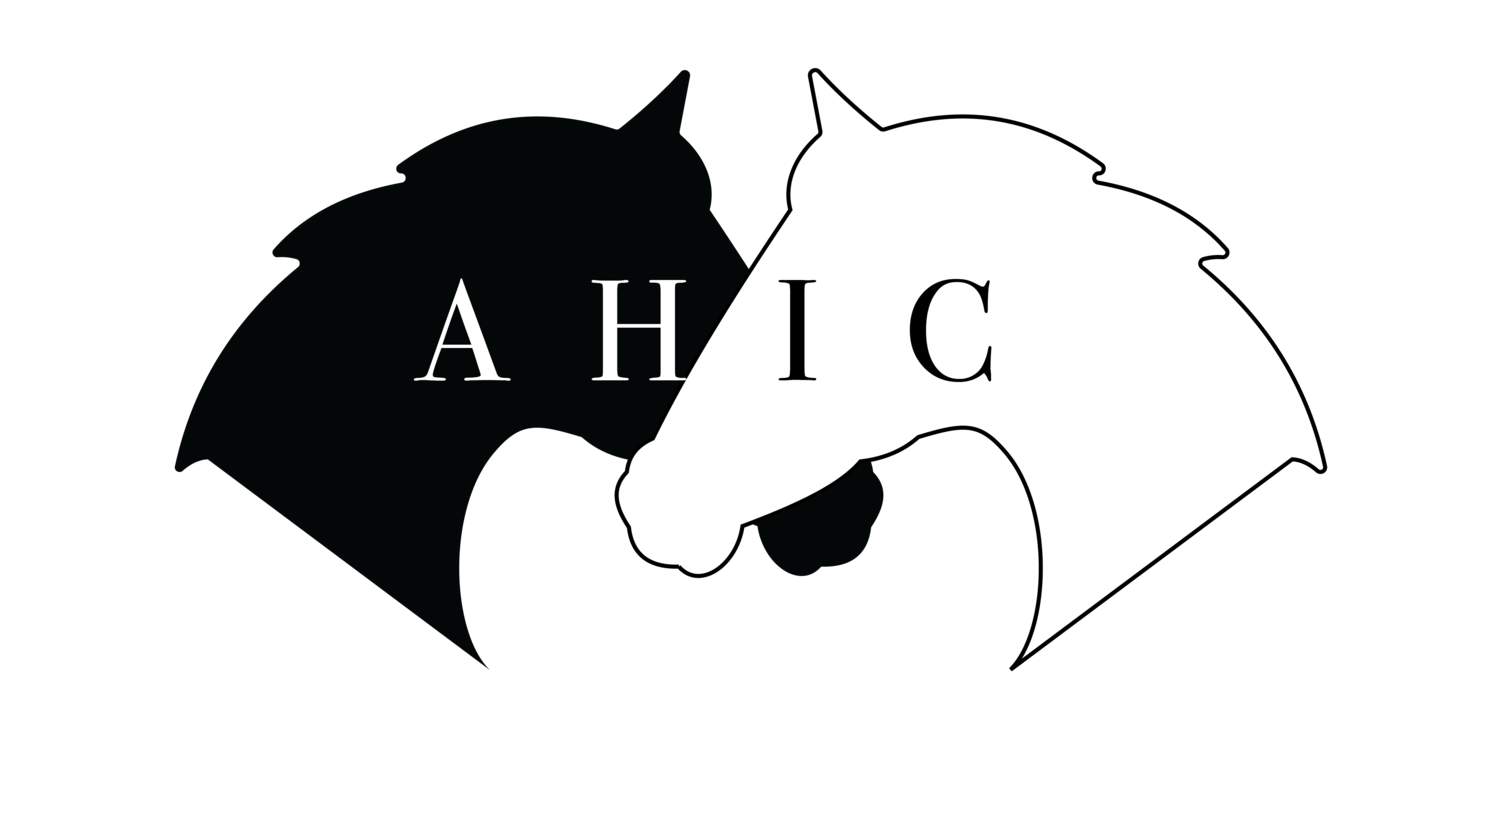 Australian Horse Industry Council